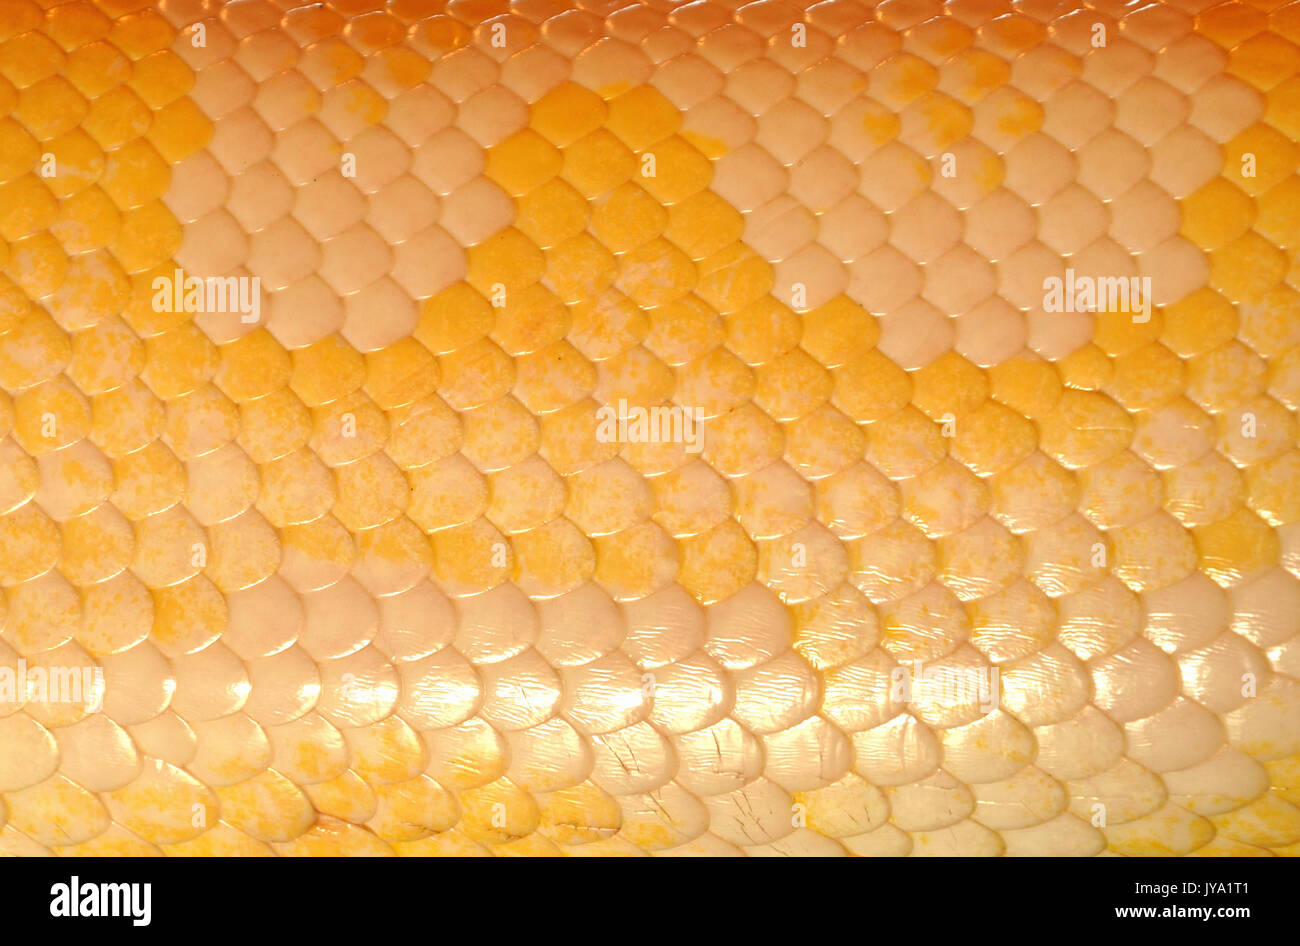 Snake skin, with its highly periodic cross-hatch or grid patterns - Stock Image